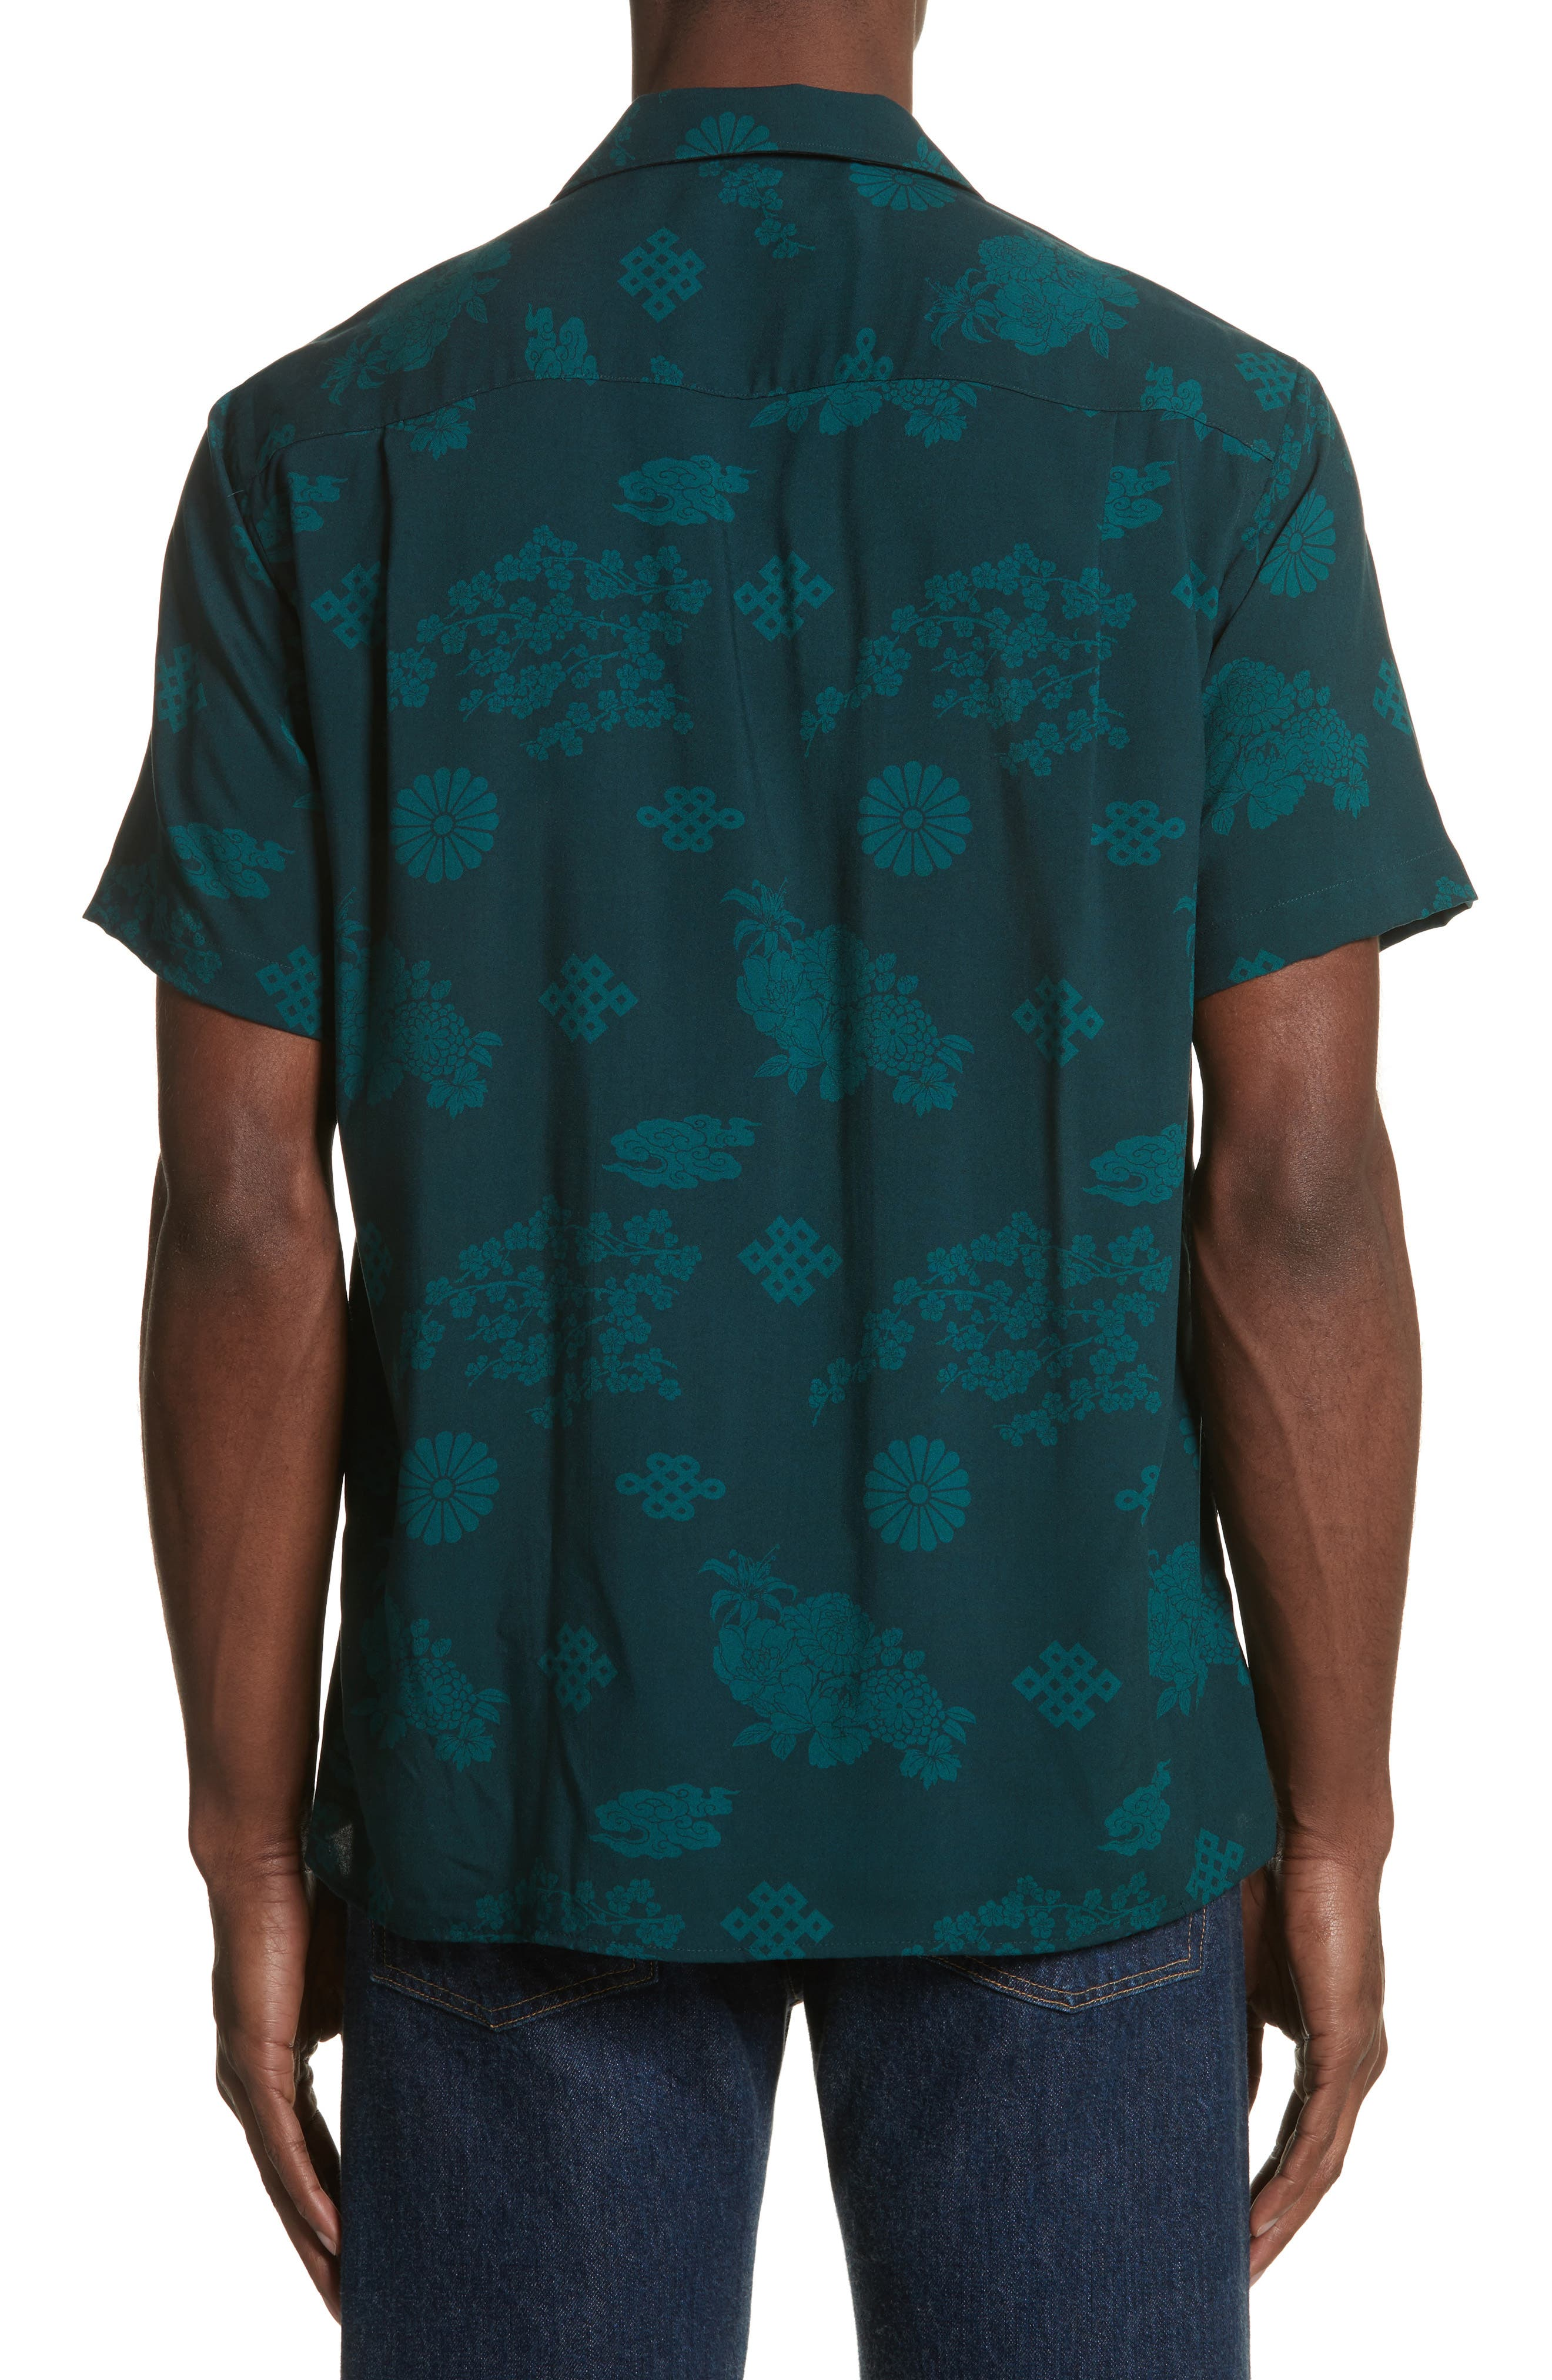 x The North Face Men's Floral Print Camp Shirt,                             Alternate thumbnail 3, color,                             Green Ground